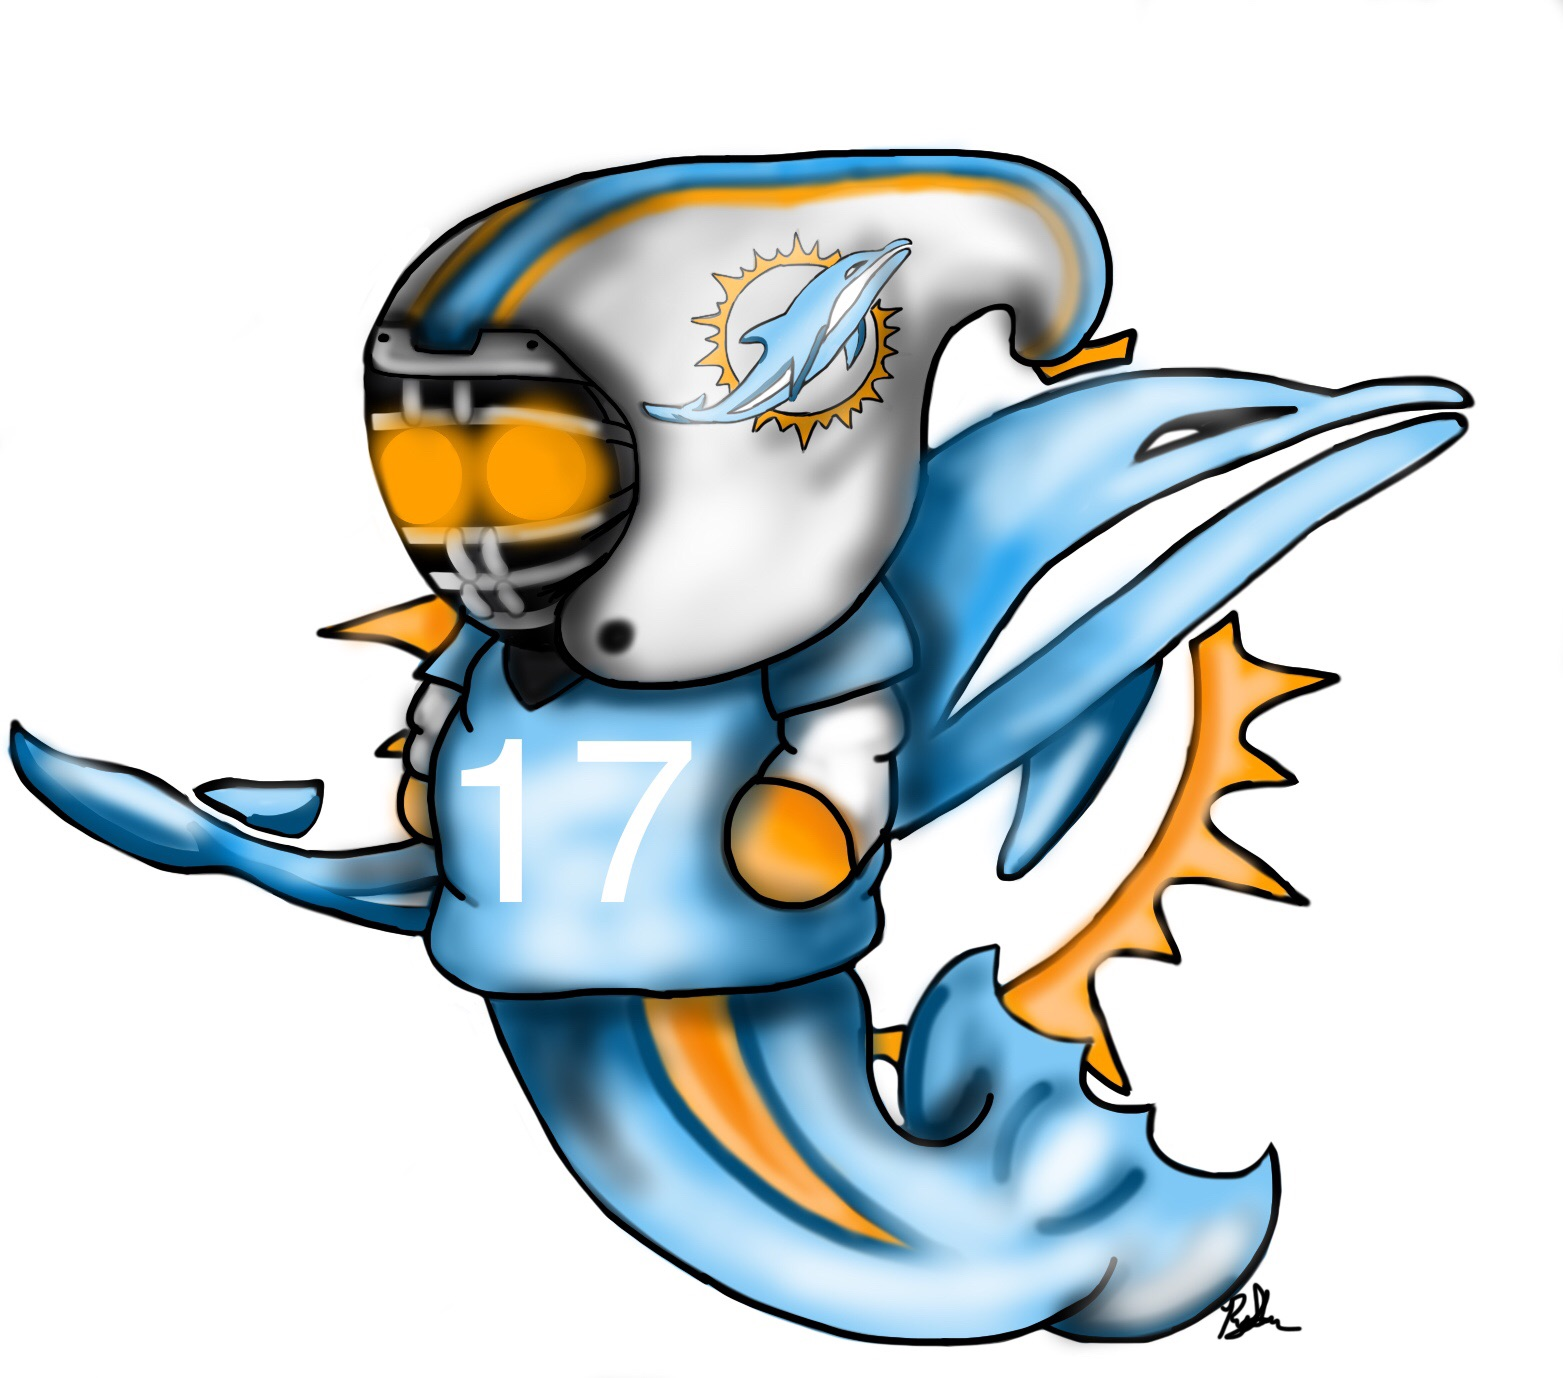 Miami dolphins by itterscritters on deviantart miami dolphins by itterscritters miami dolphins by itterscritters voltagebd Choice Image